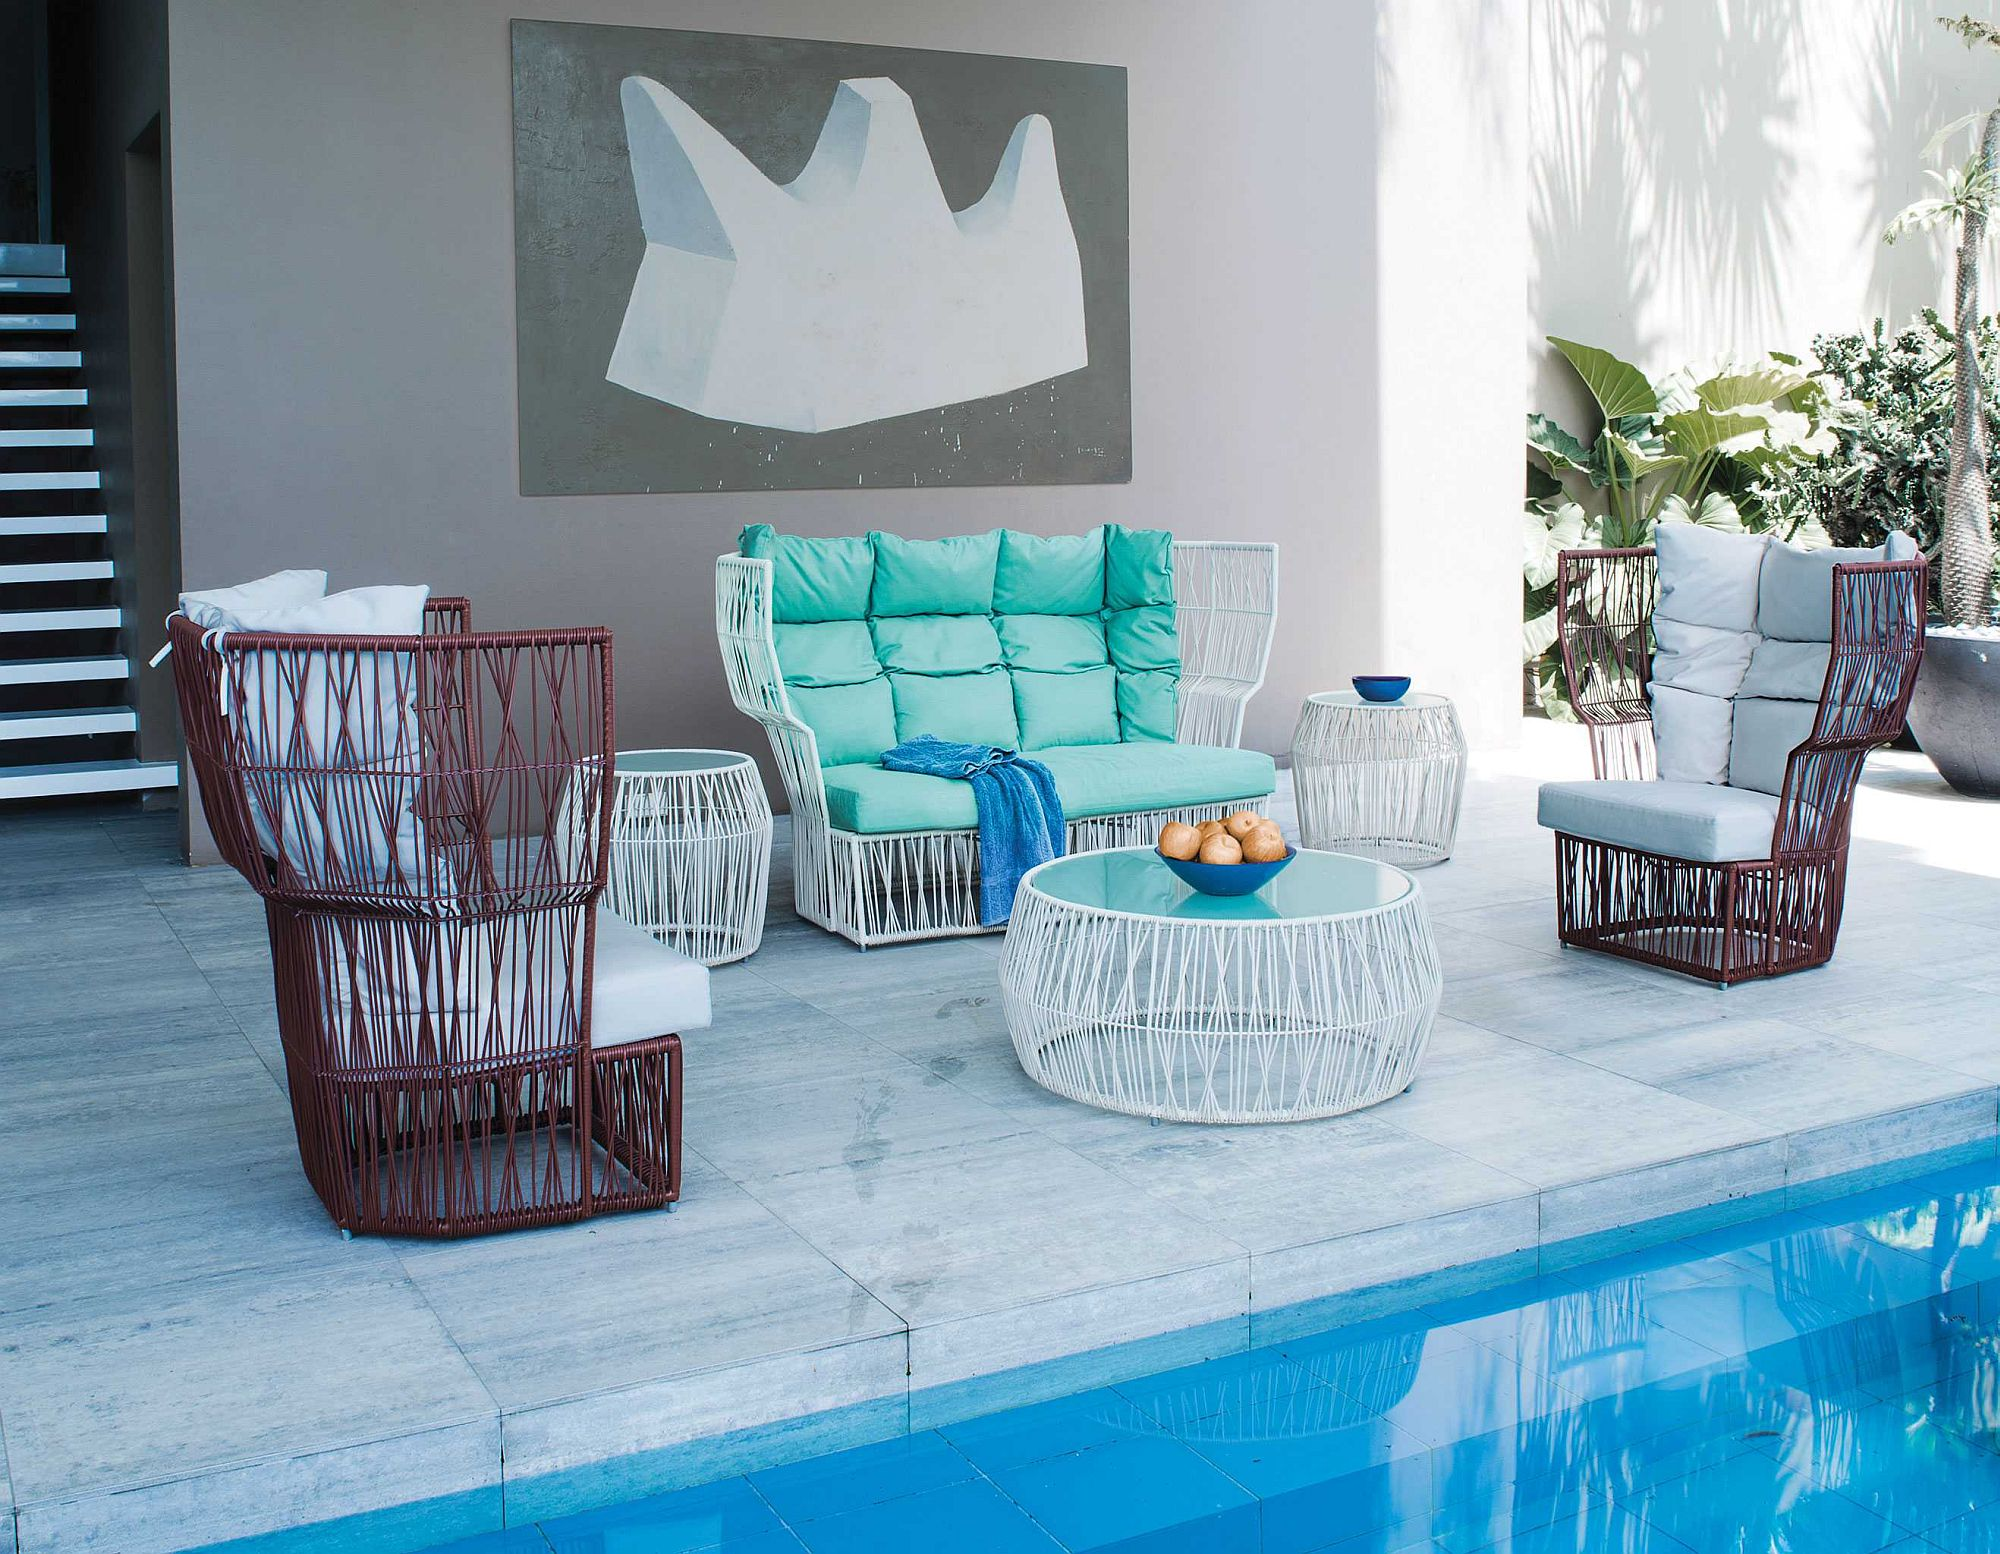 Durable and exquisite outdoor lounge decor from Kenneth Cobonpue